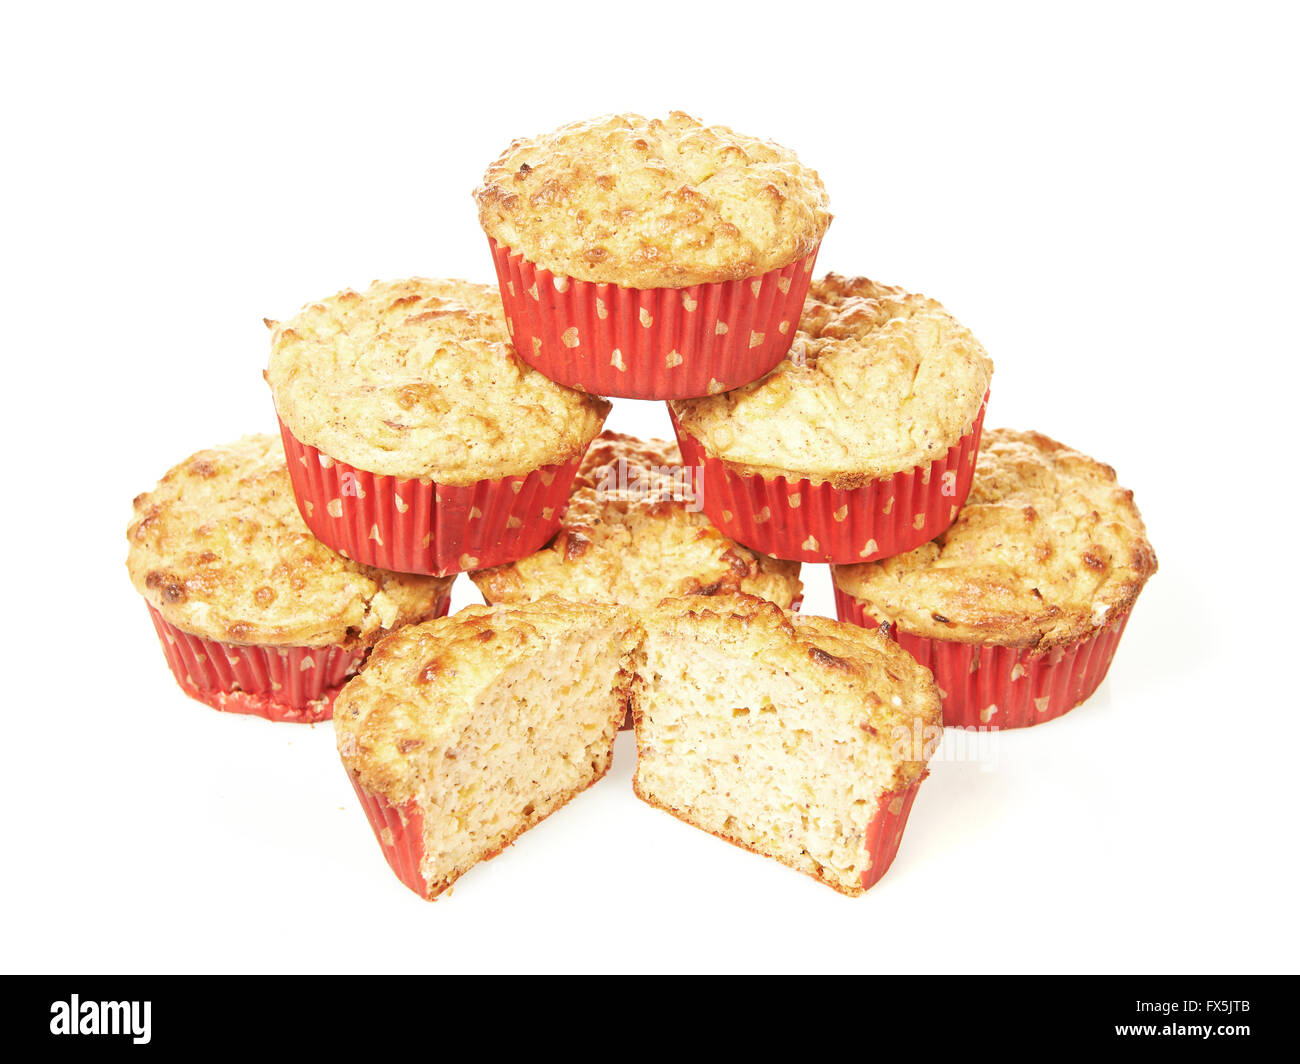 Low calorie muffins isolated on a white background - Stock Image